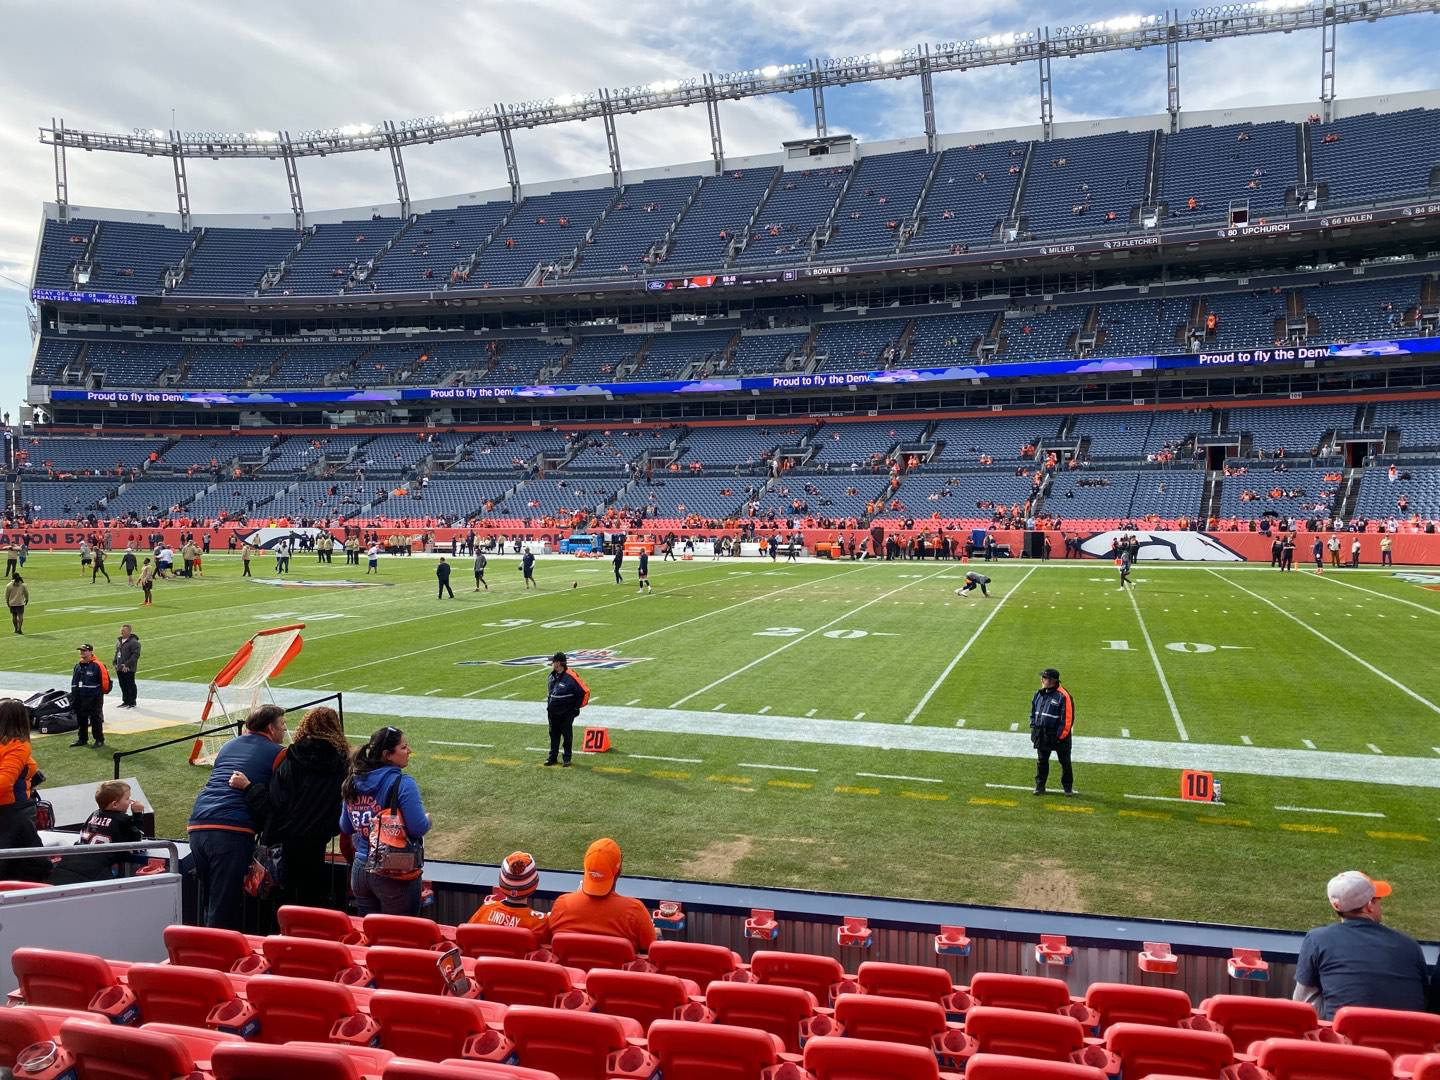 Empower Field at Mile High Stadium Section 120 Row 8 Seat 15